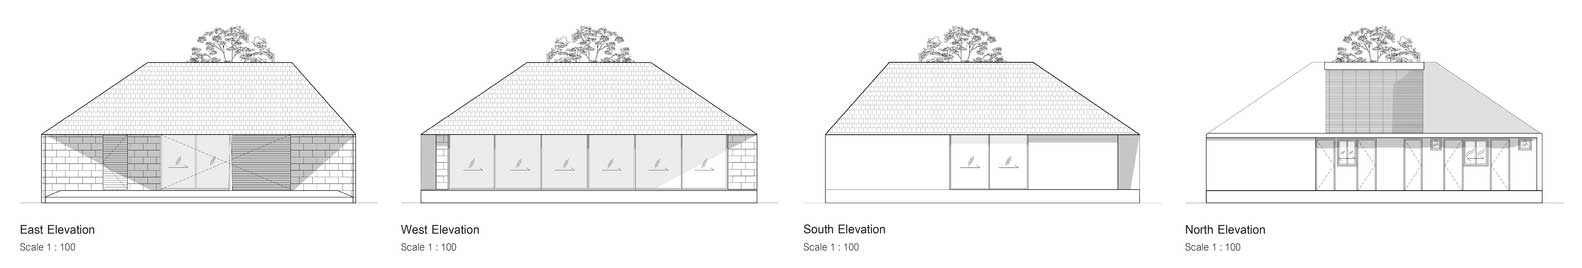 House Roof Design As The Main Architectural Element That Gives Charm To The Whole Building 333 Images Artfacade